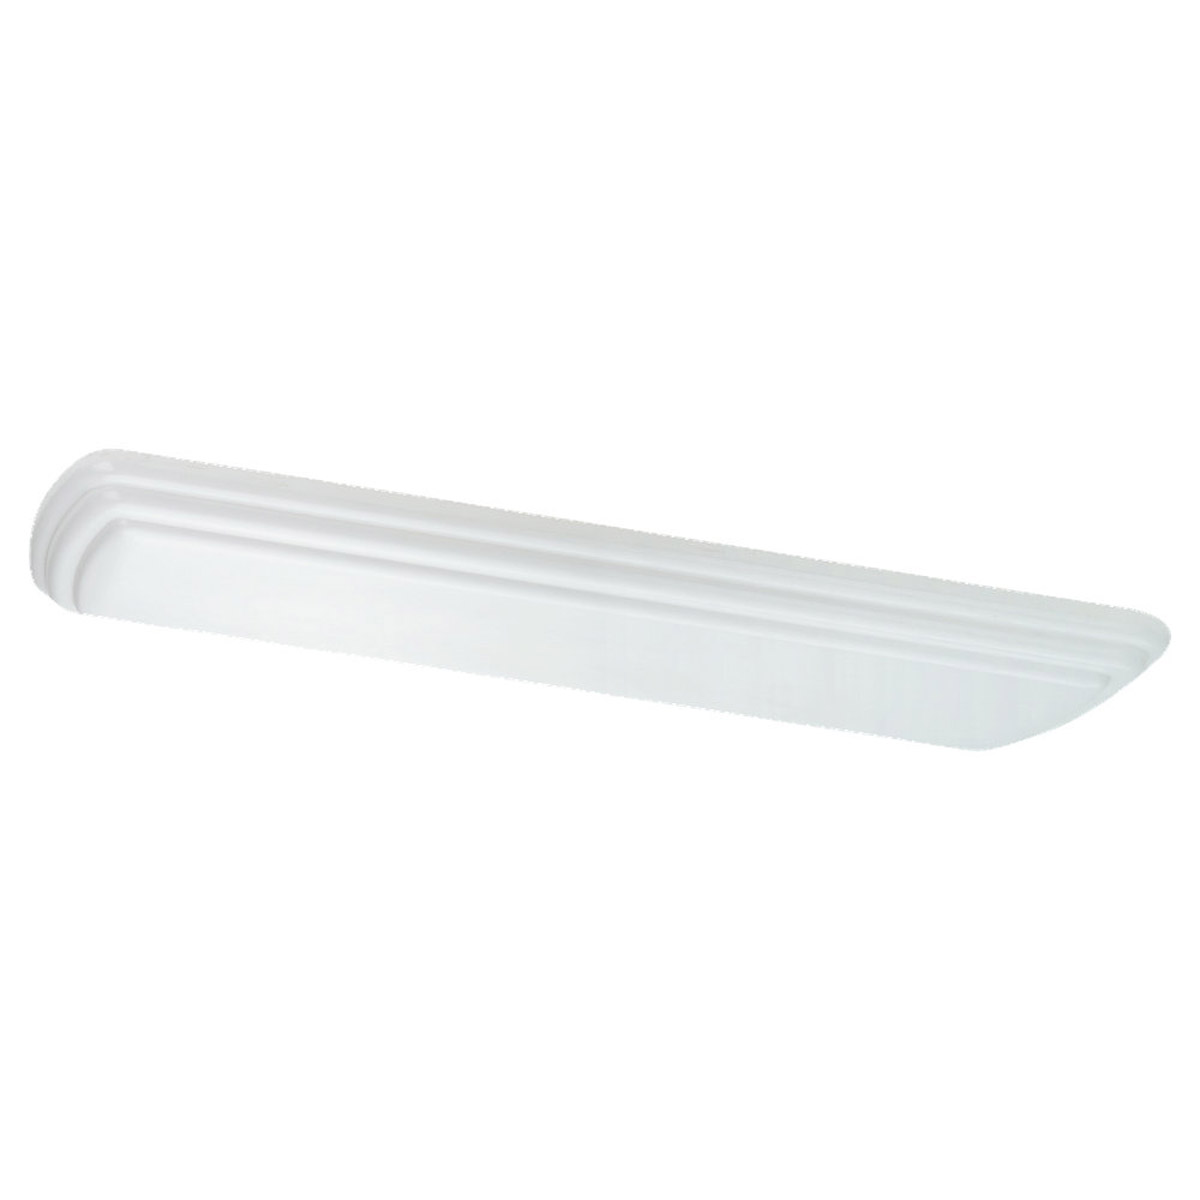 Sea Gull Lighting Farley 4 Light Fluorescent Ceiling in White 5915LE-15